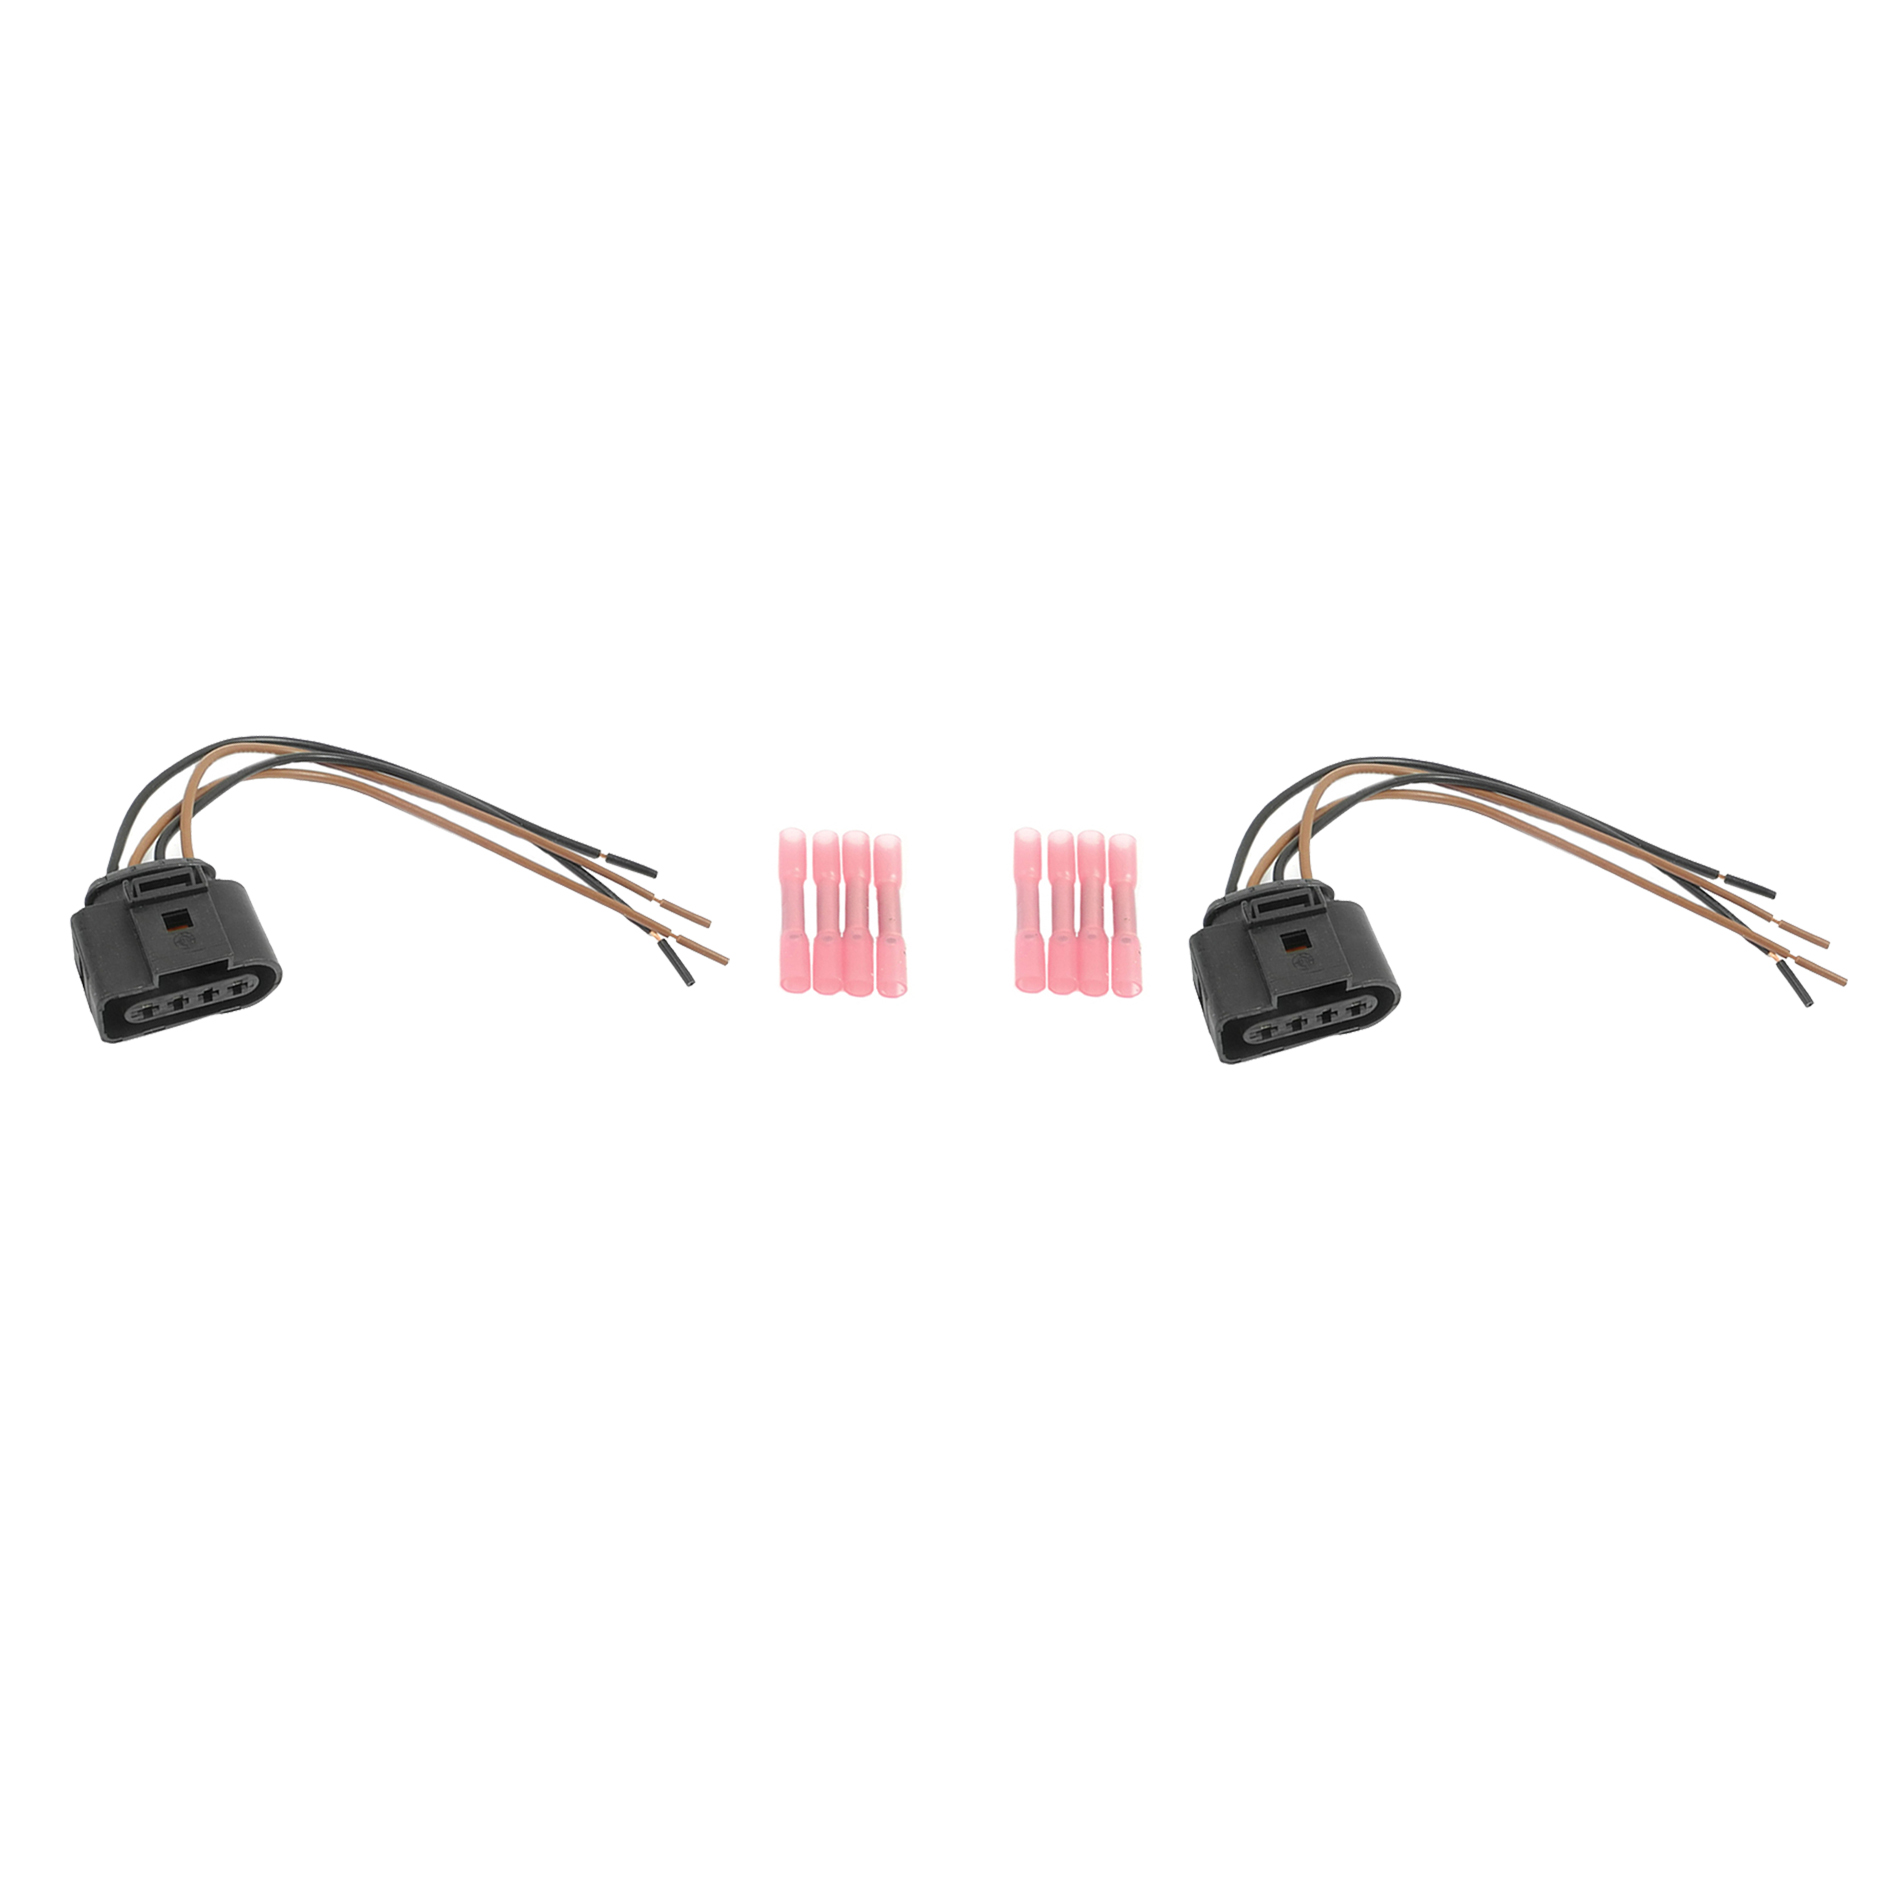 hight resolution of cf advance for 00 08 audi a4 a5 a6 a8 rs4 s4 s6 s8 vw beetle eos golf jetta passat ignition coil repair kit connector pigtail harness wires set of 2pcs 2000